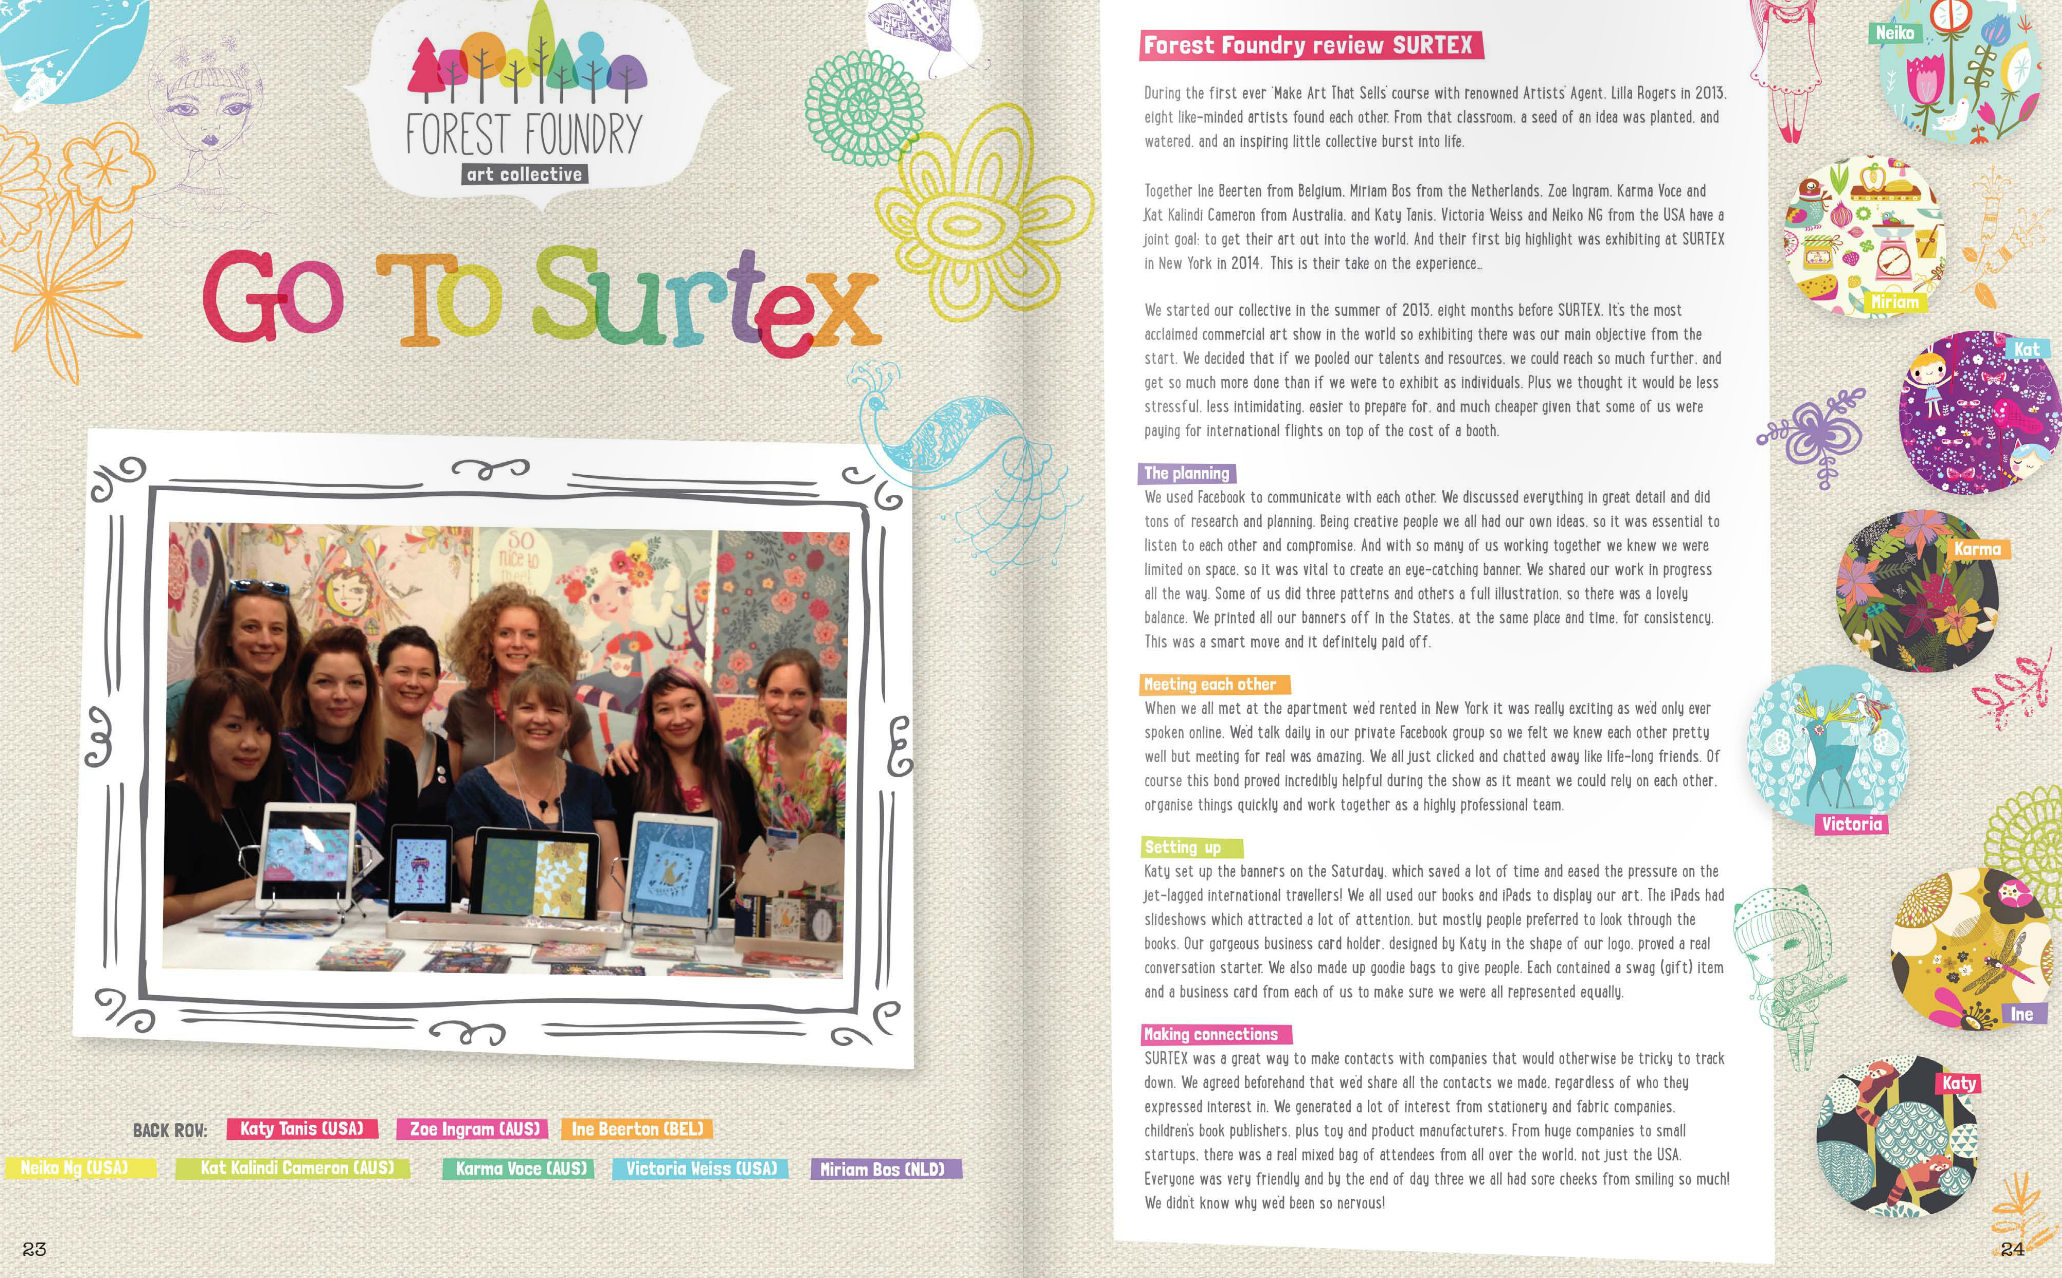 Surtex with Forest Foundation